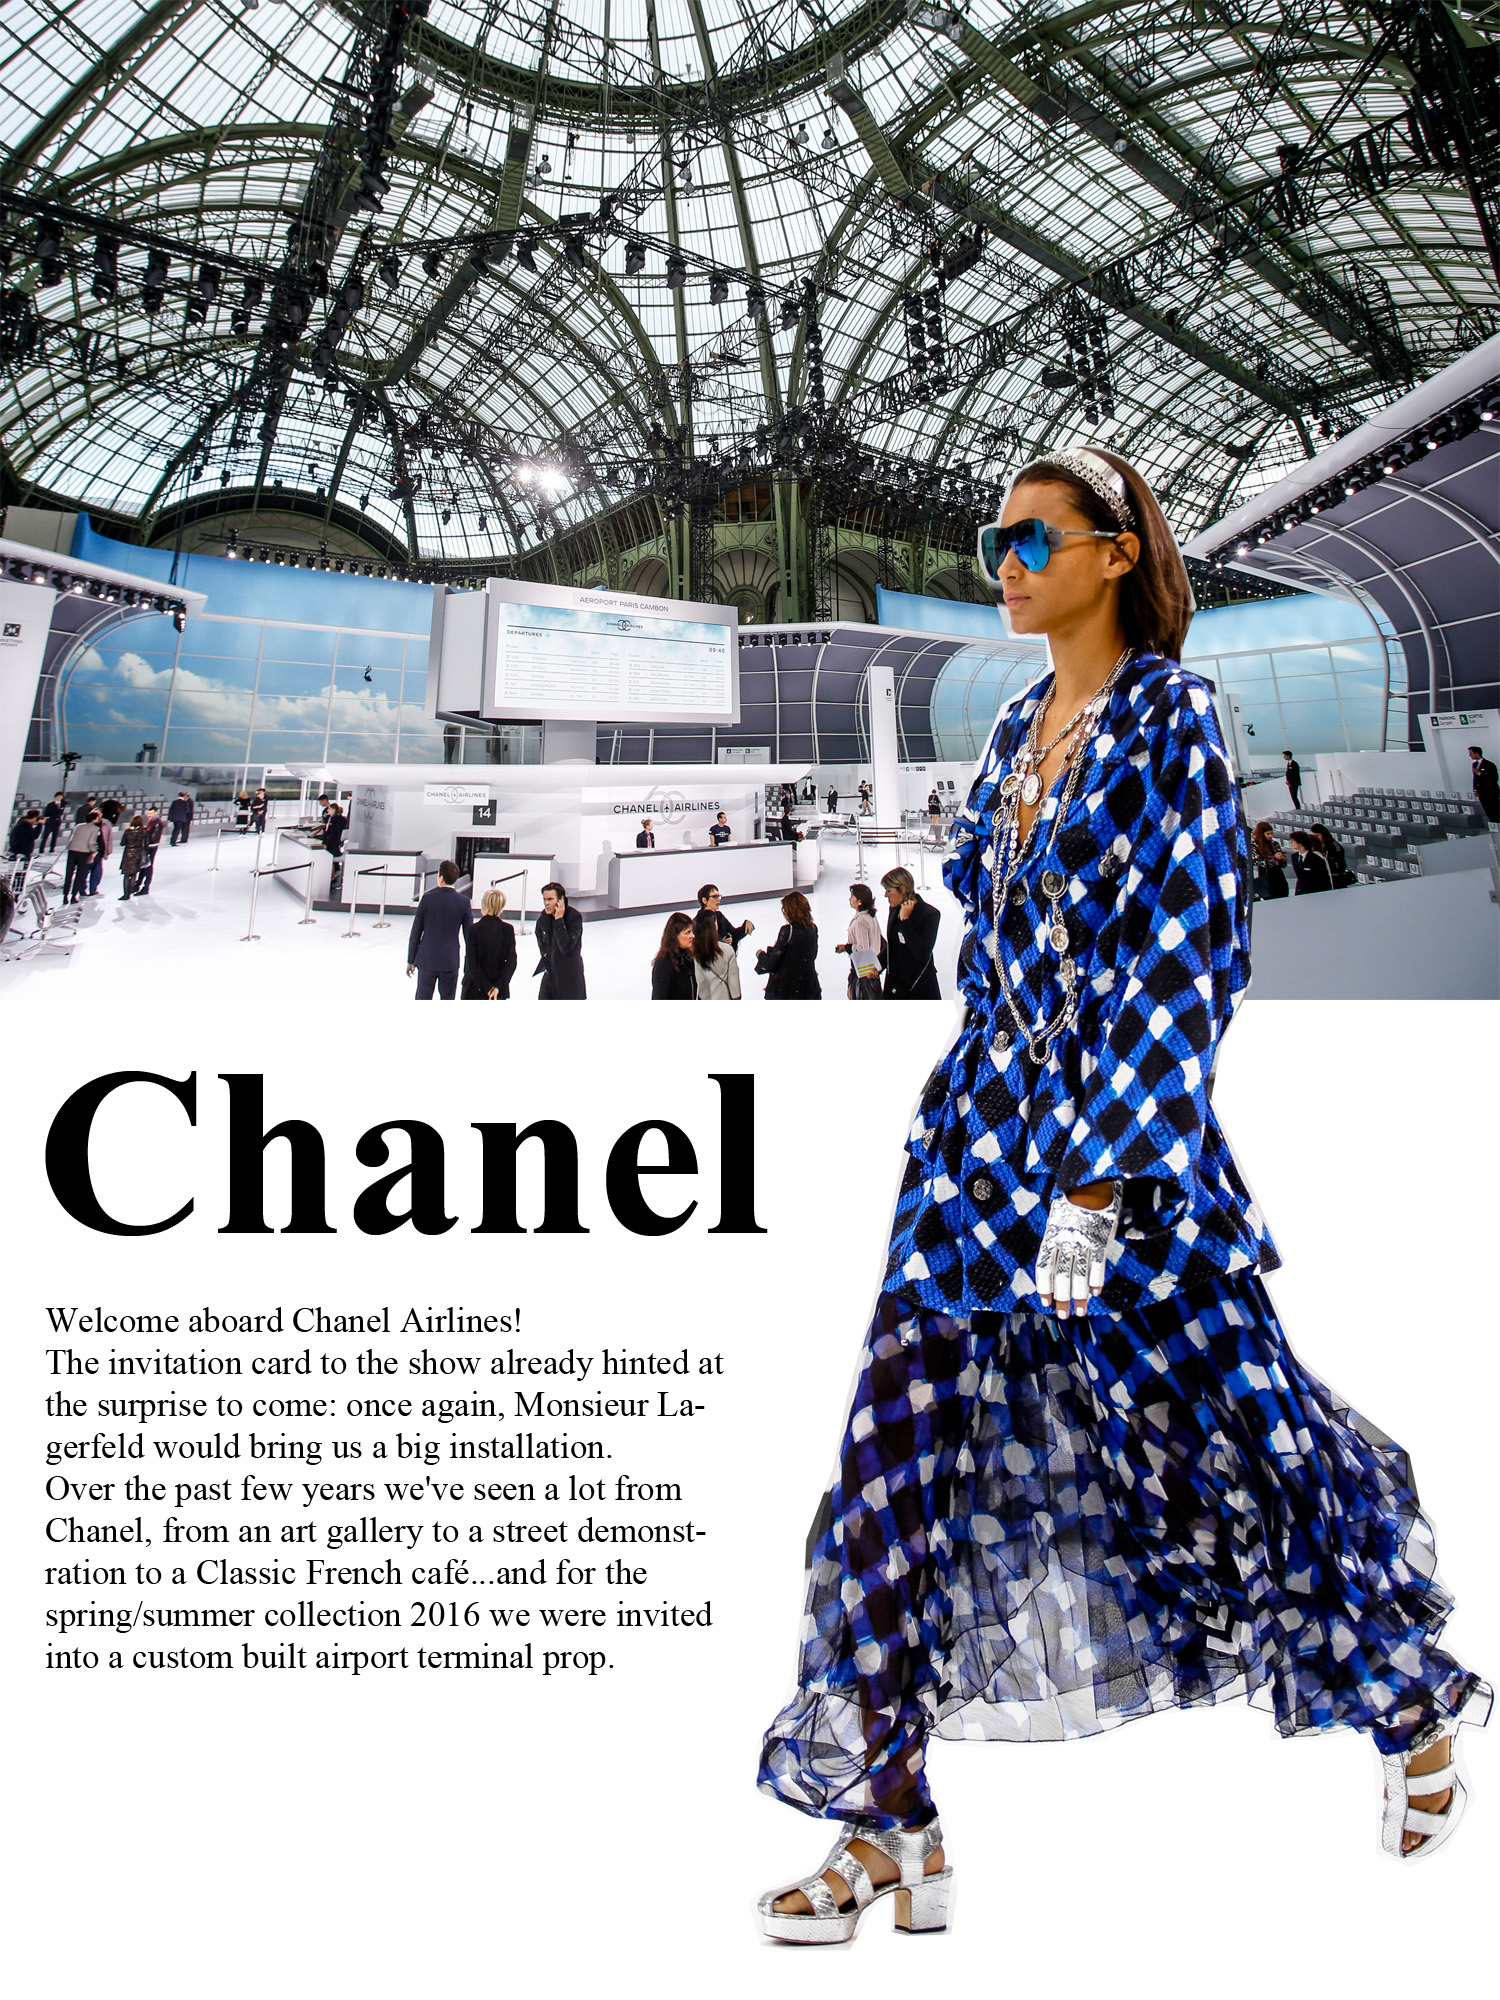 chanel-eng